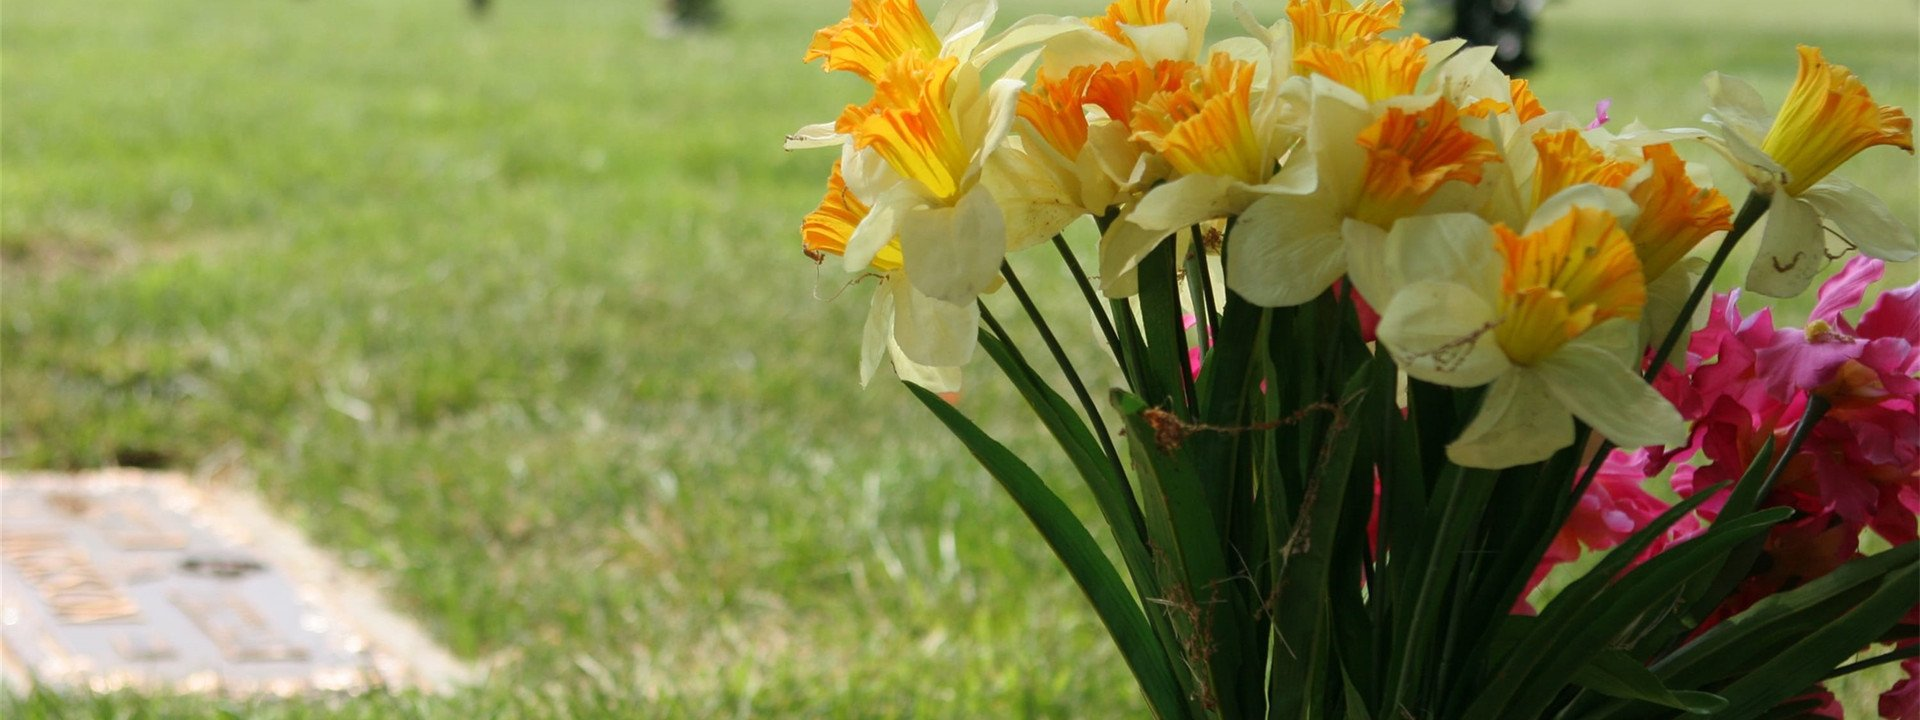 Services | Gethsemane Cemetery and Memorial Gardens